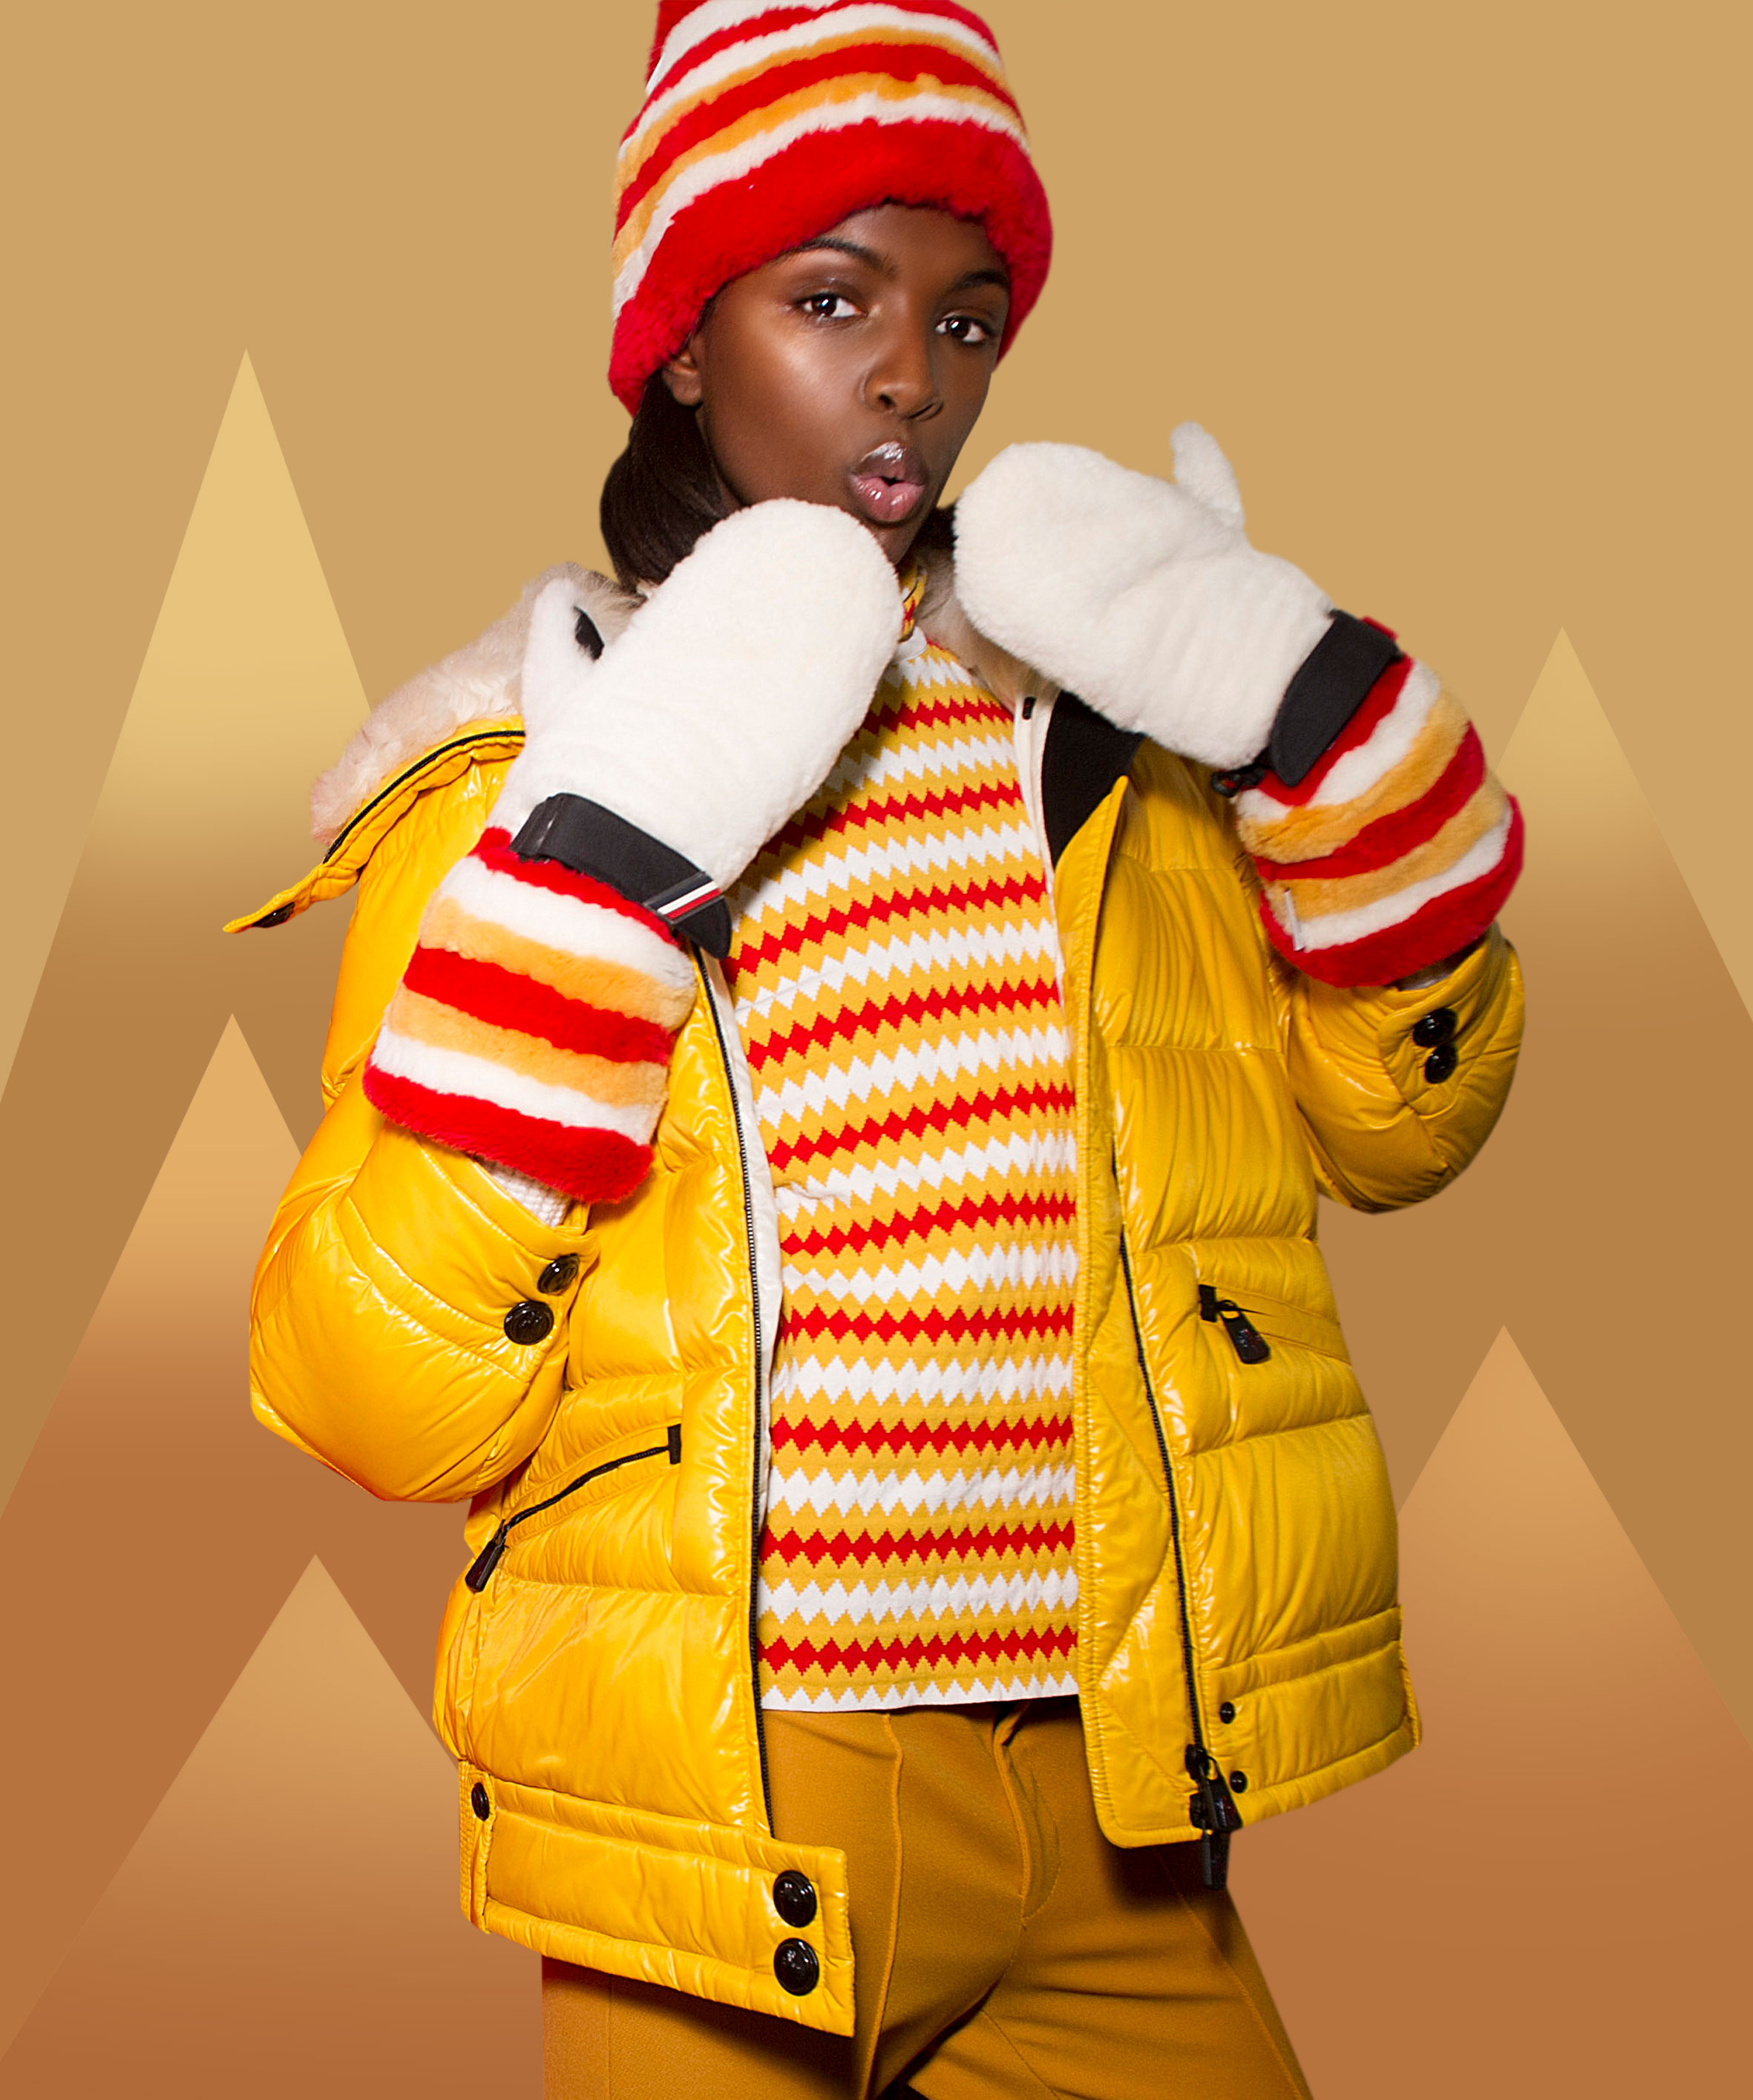 Ski suit by Moncler